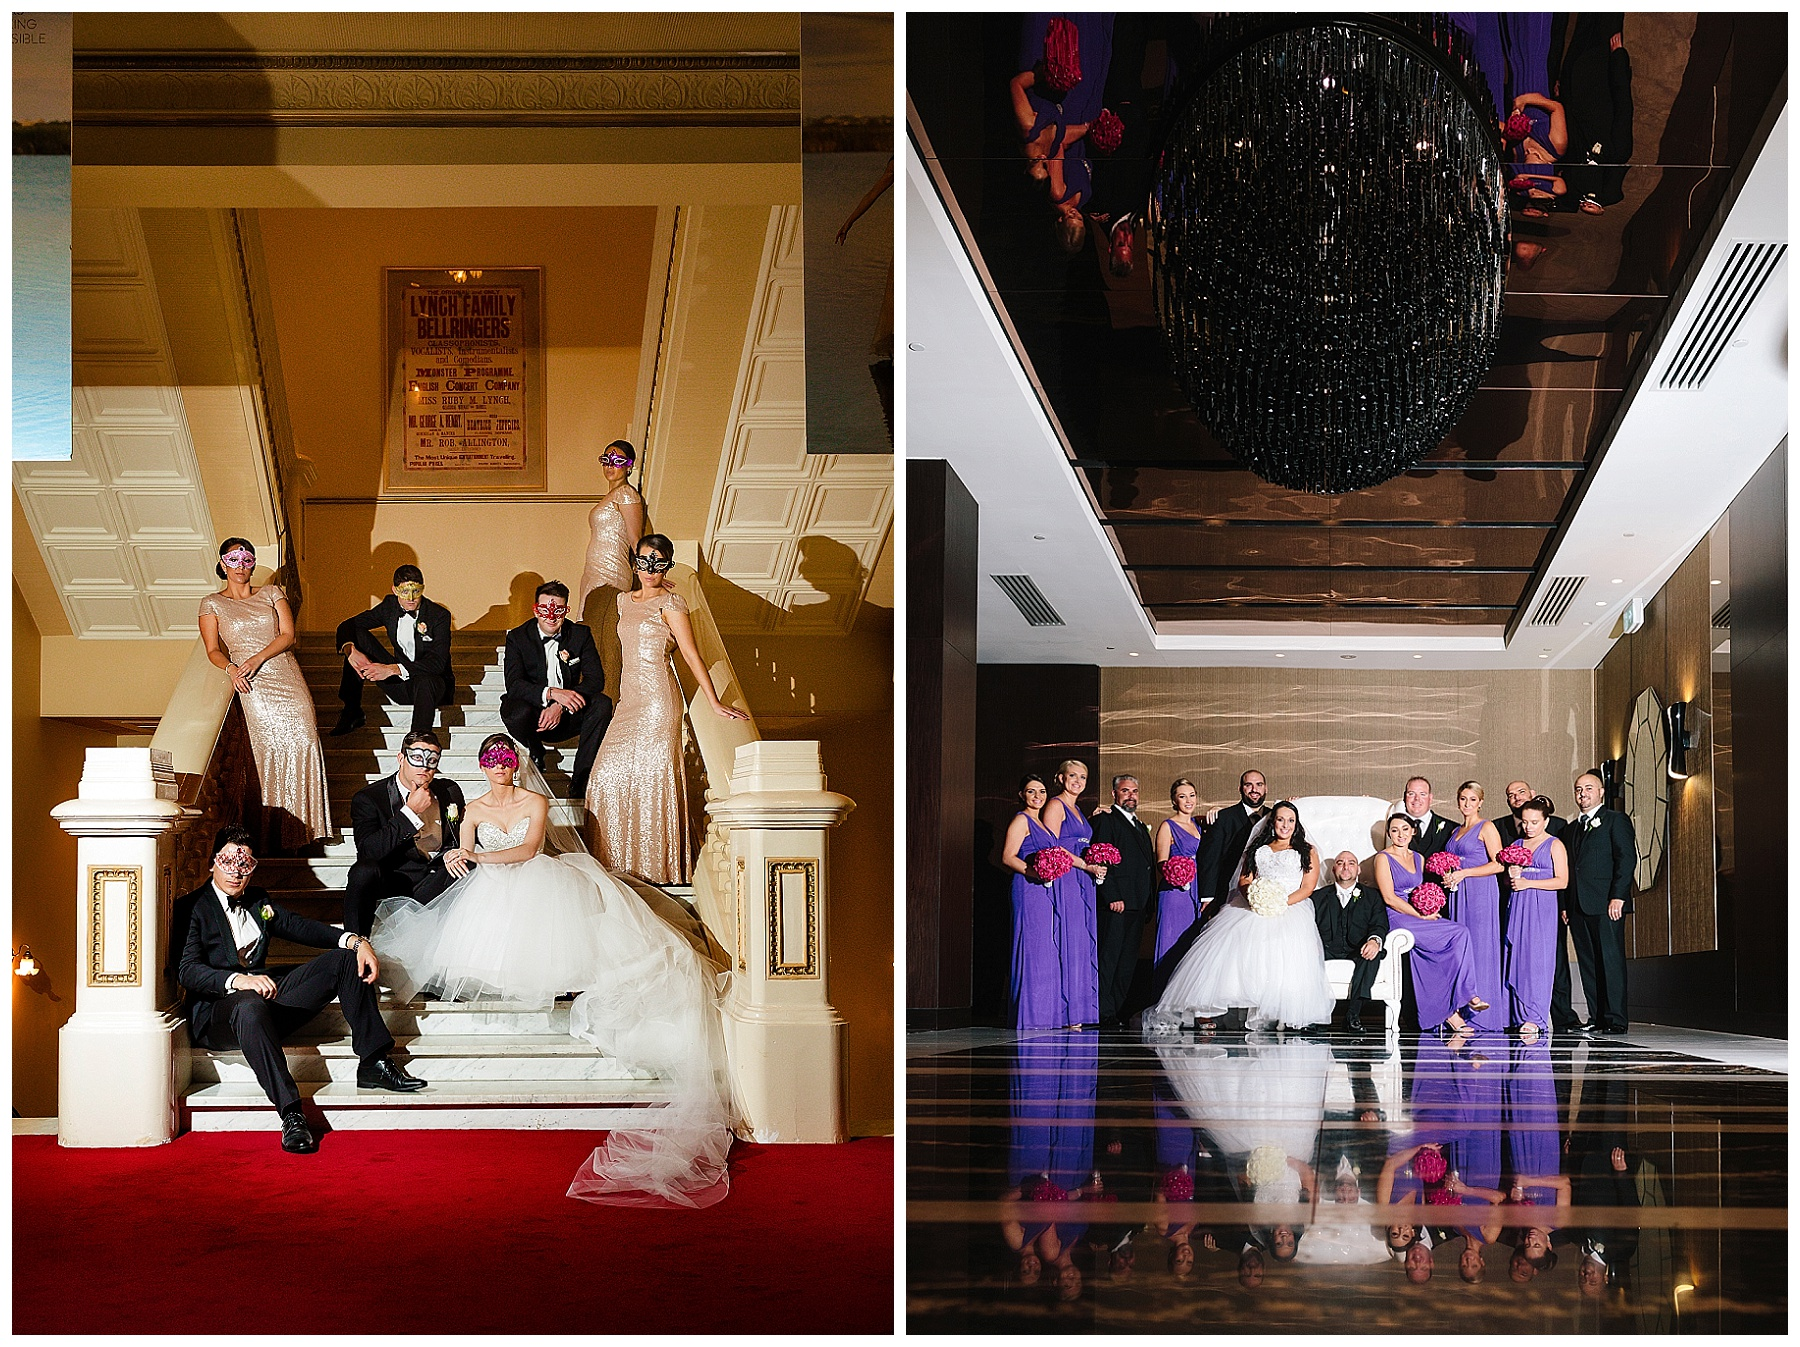 His Majestys Theatre wedding photography